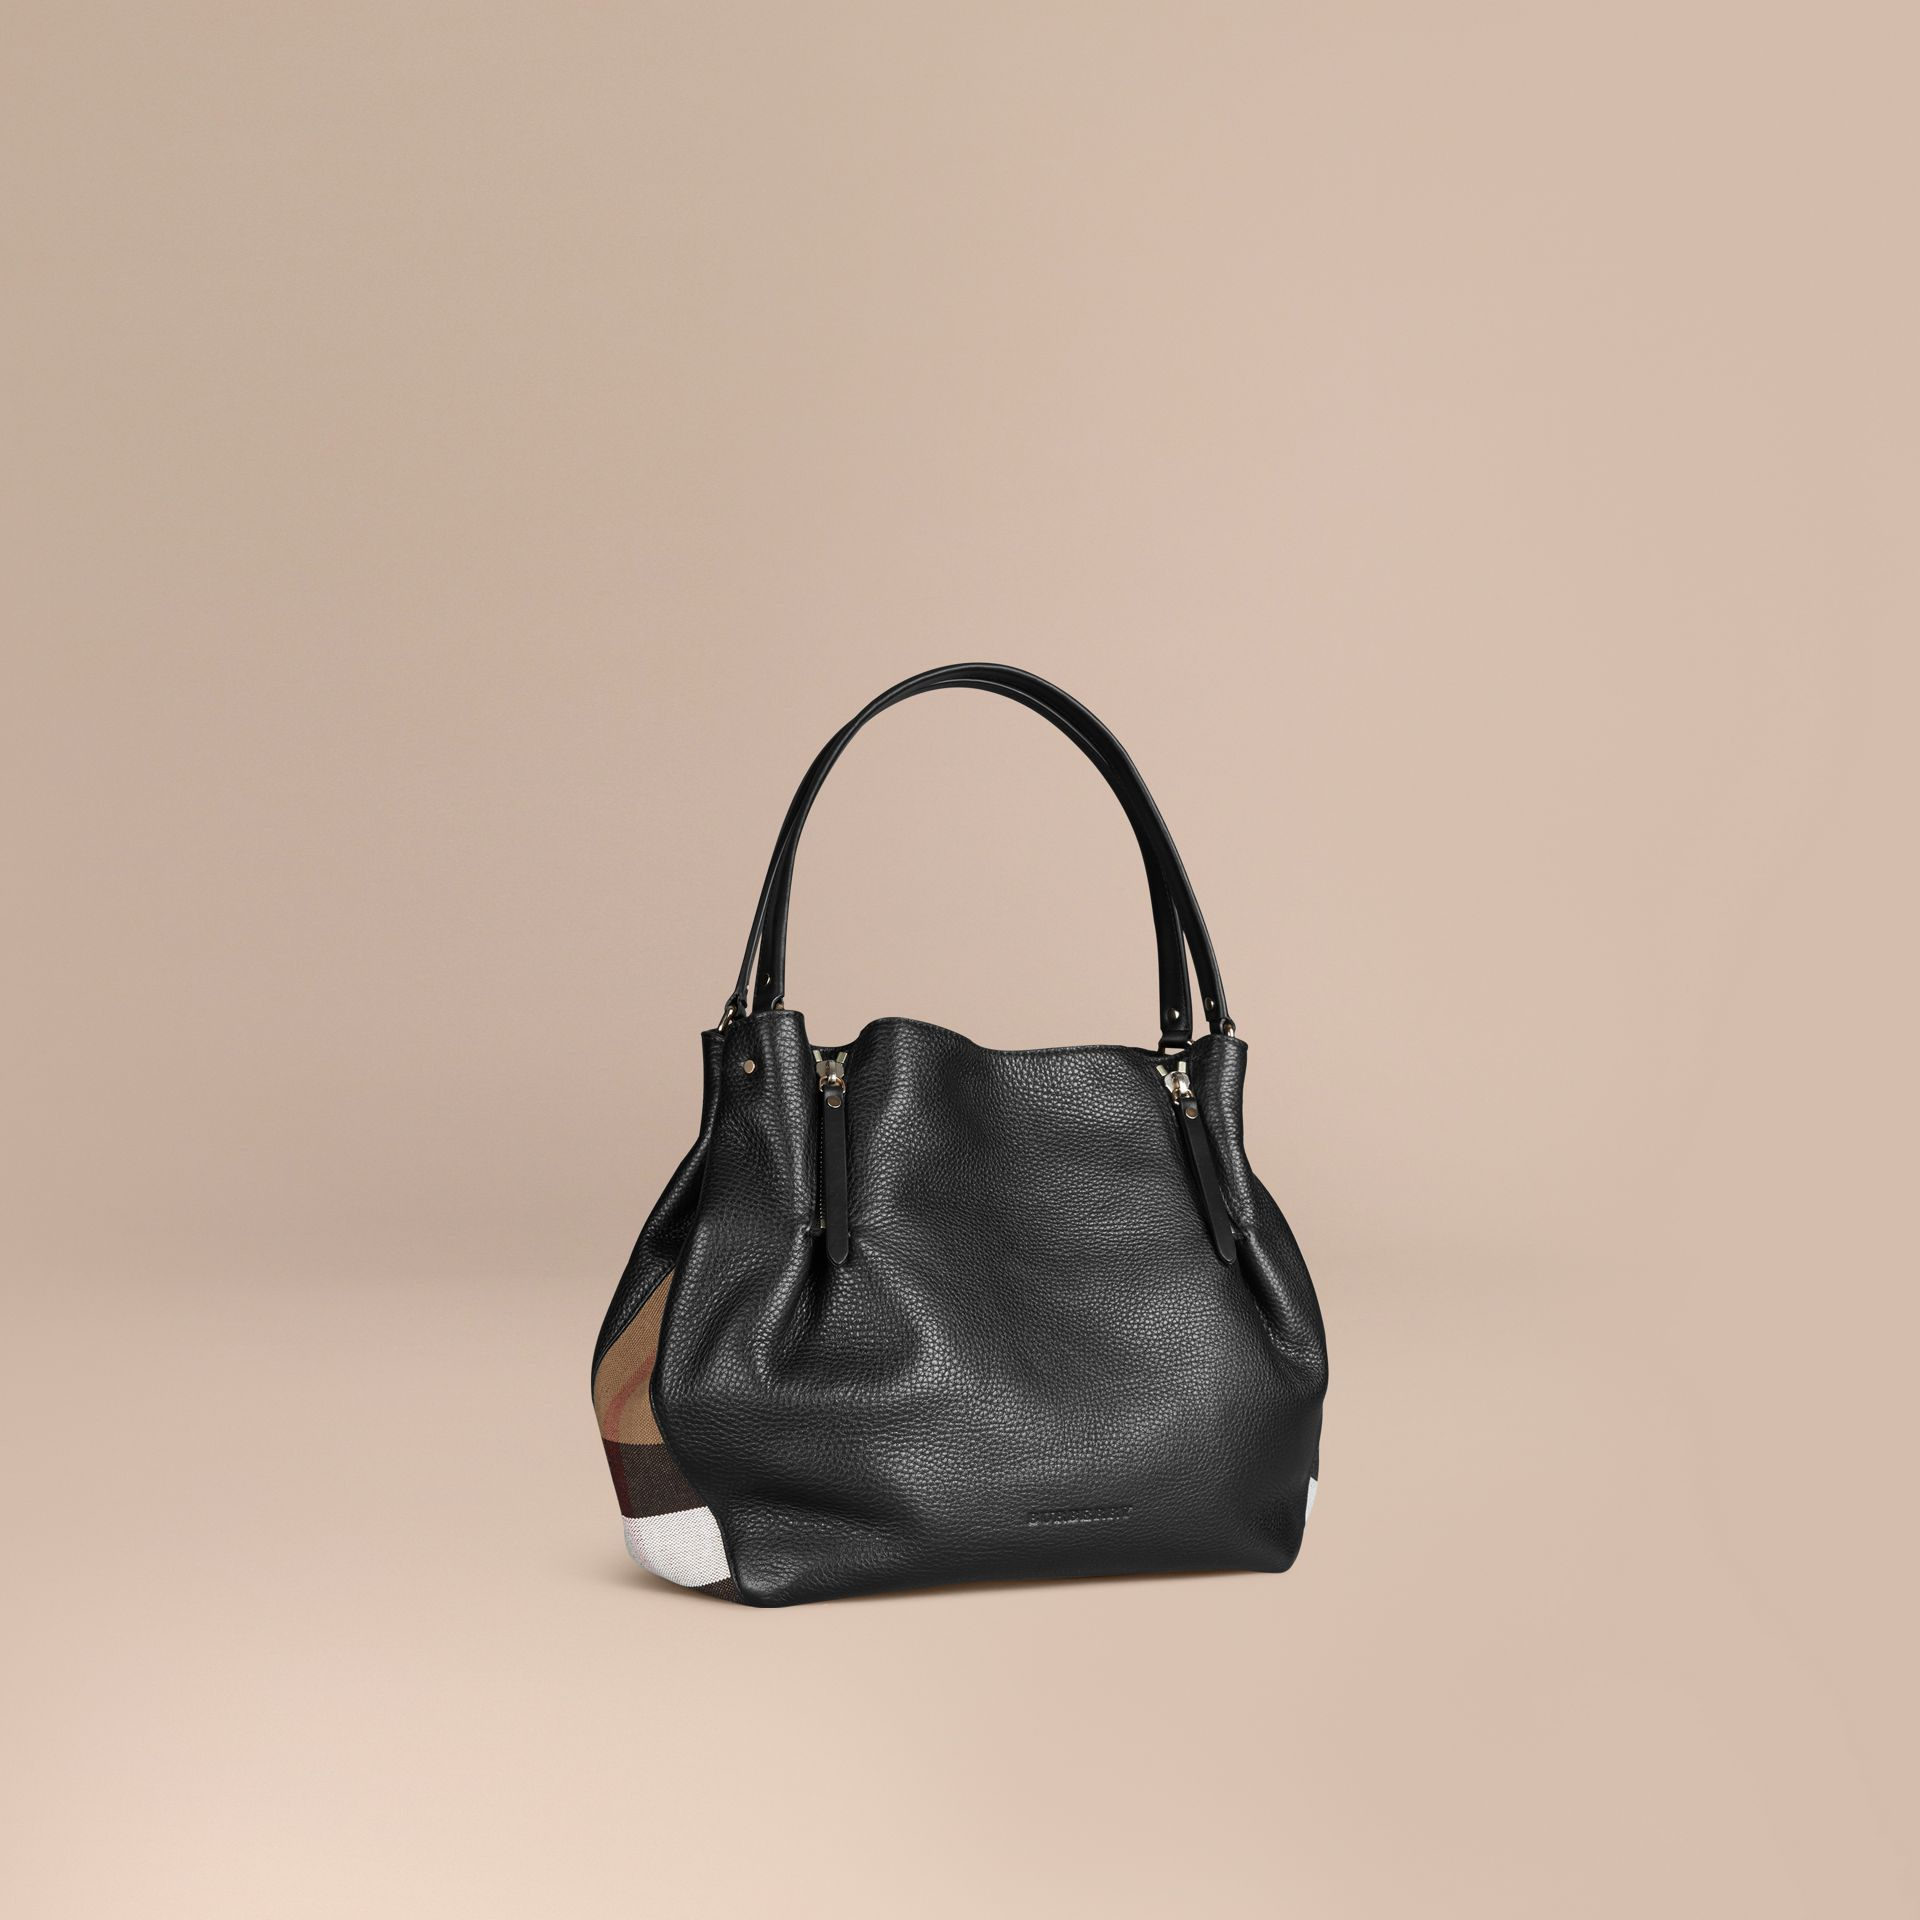 Black Medium Check Detail Leather Tote Bag Black - gallery image 1